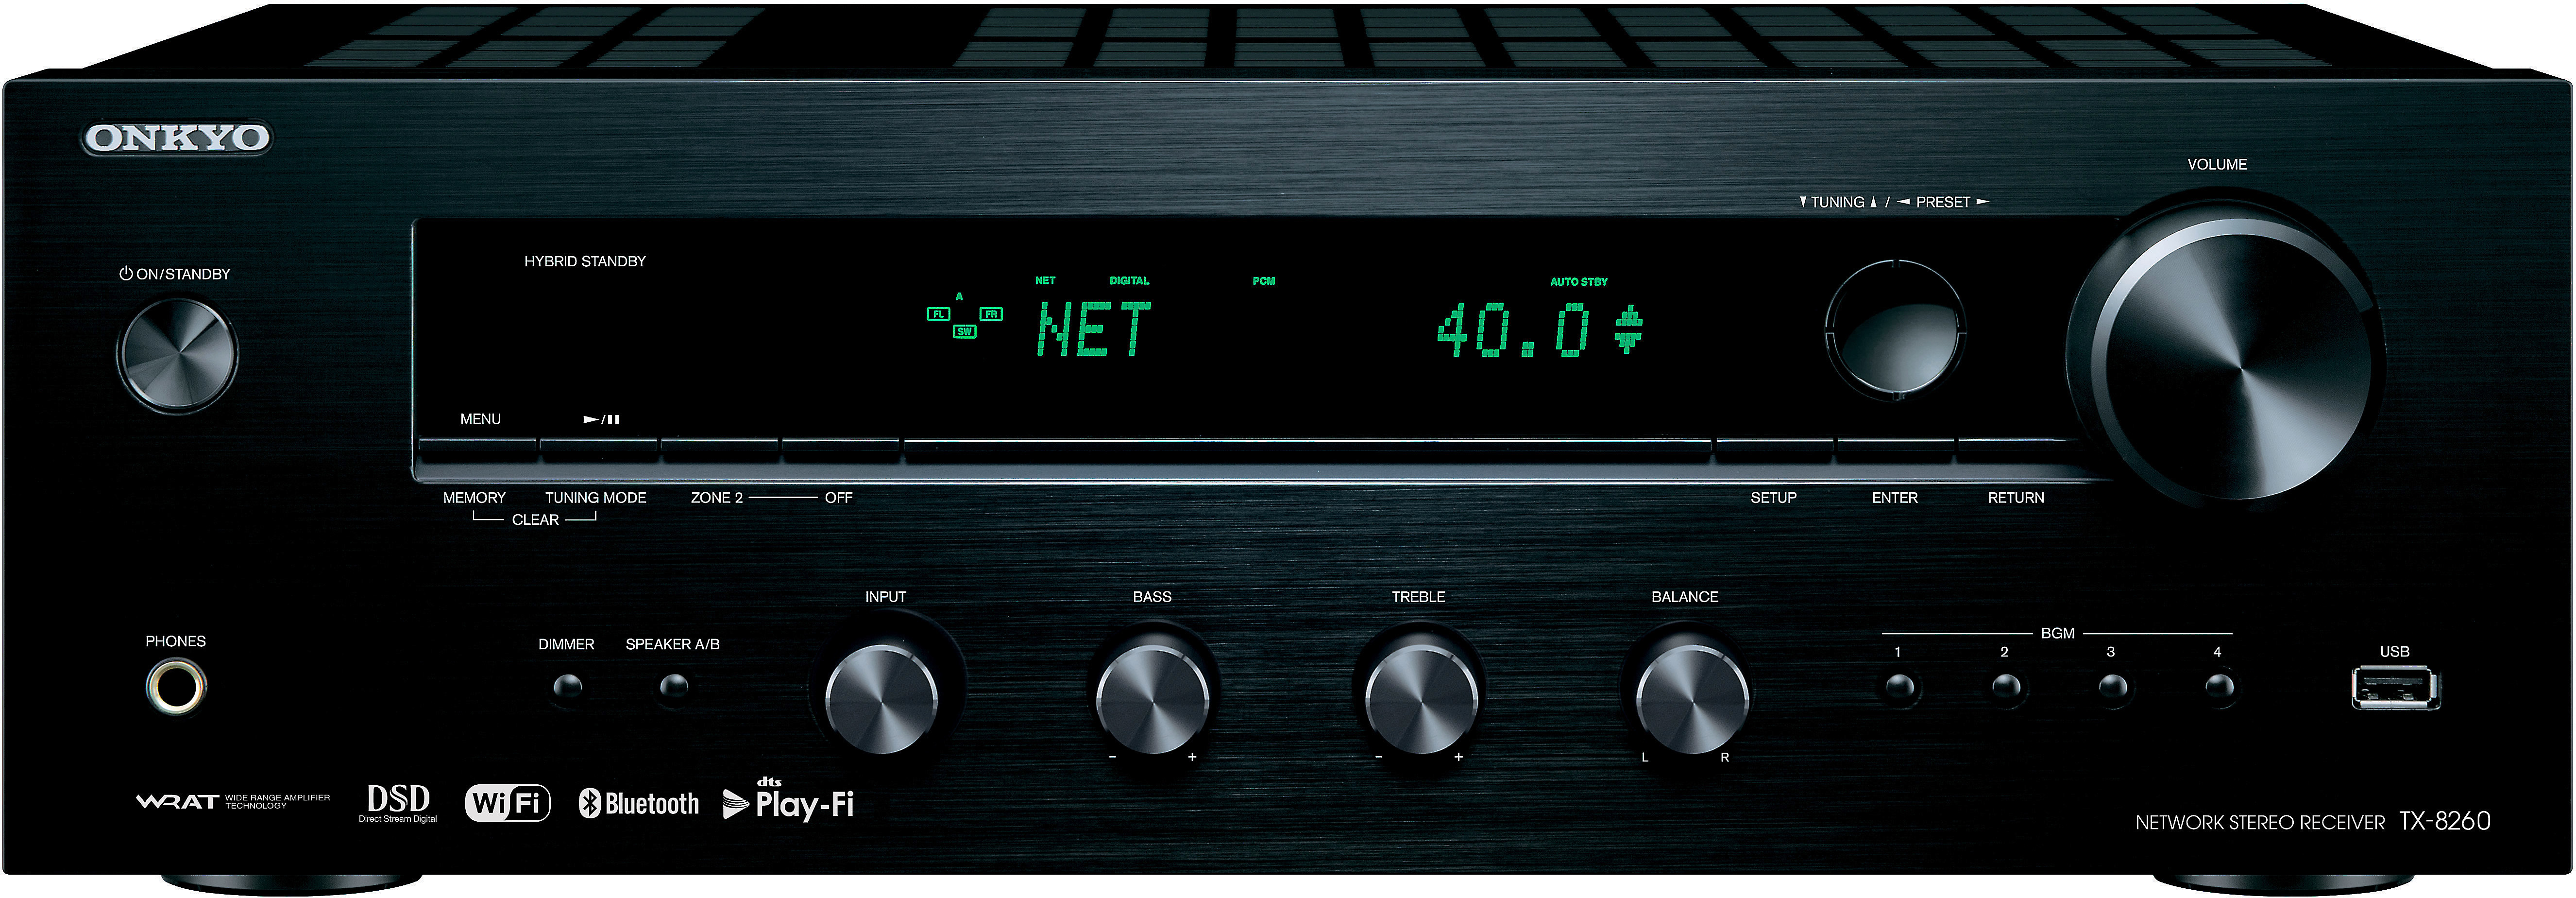 Onkyo Tx 8260 Stereo Receiver With Wi Fi Bluetooth And Chromecast Built In At Crutchfield